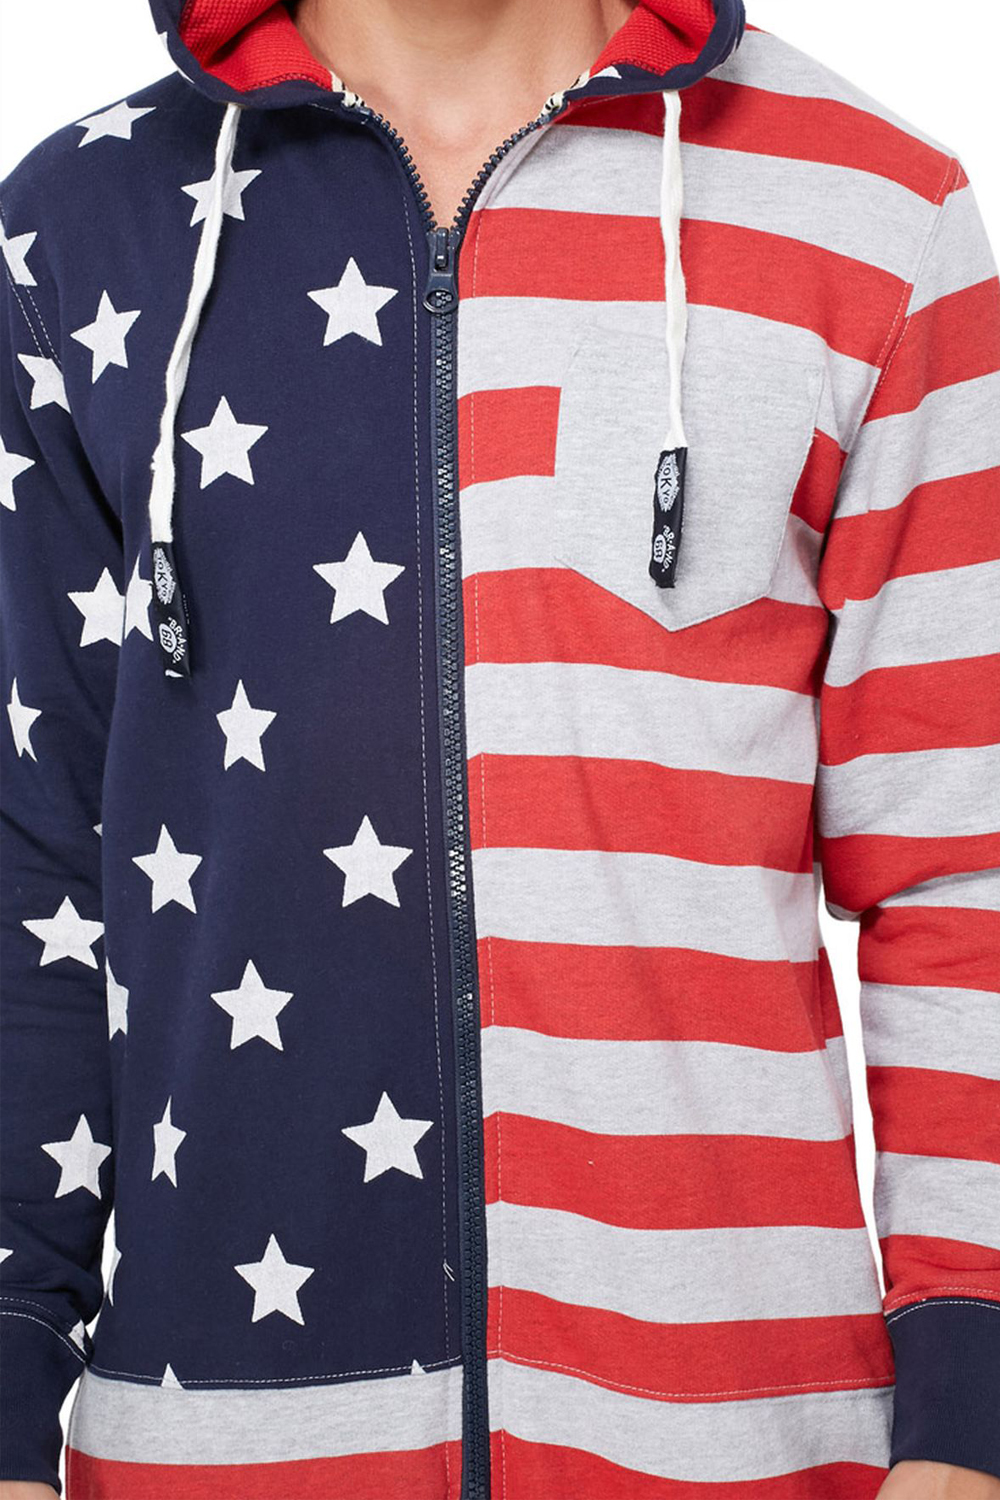 Tokyo-Laundry-Adults-All-In-One-American-USA-Flag-Print-Hooded-Lounge-Jumpsuit thumbnail 3